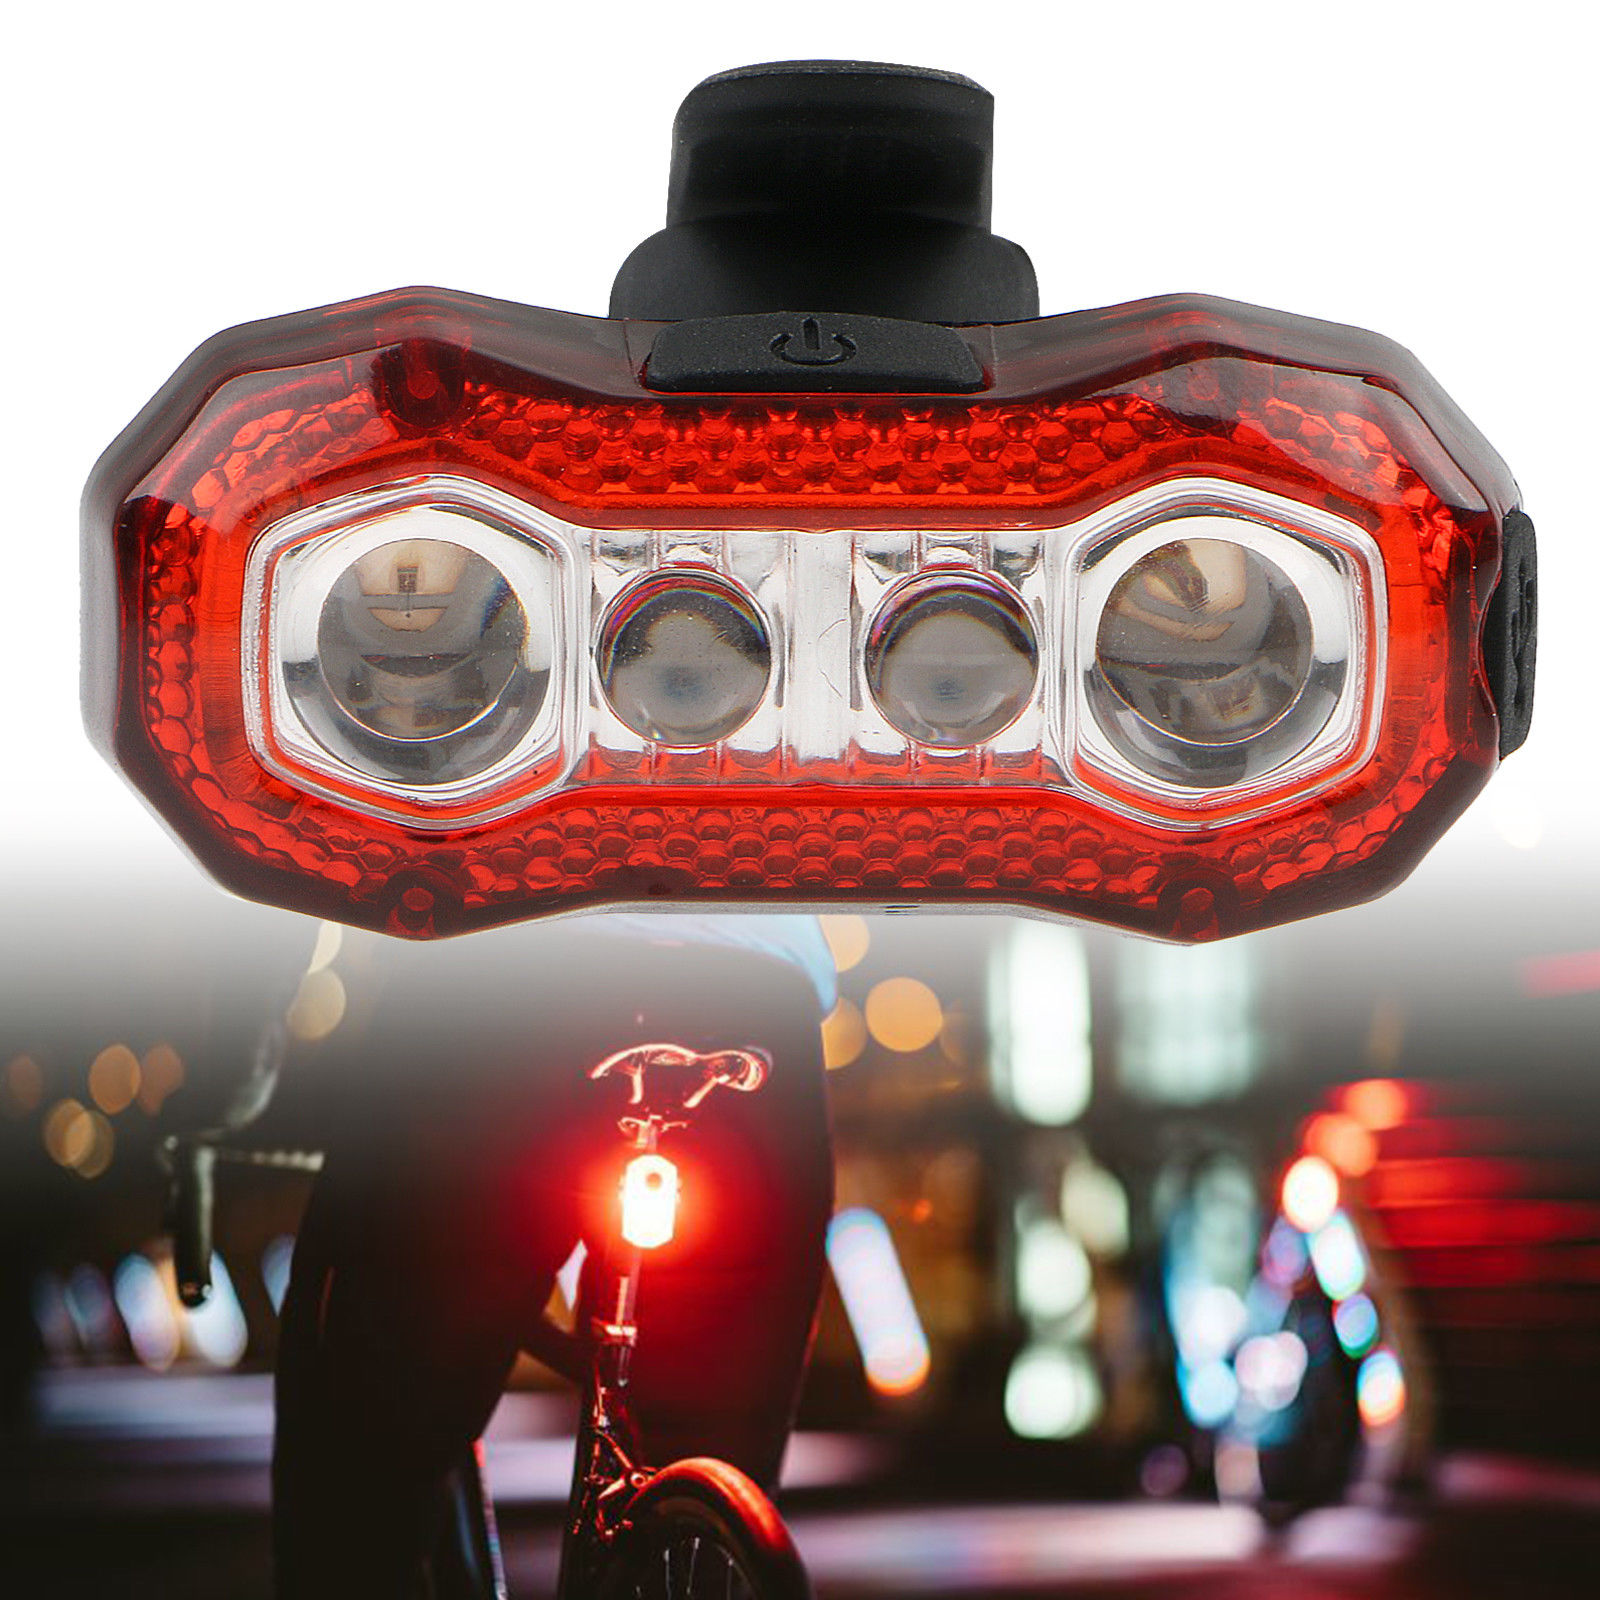 EEEKit 4-LEDs Bicycle Tail Light, 5 Modes Bicycle Bike Cycling Rear Tail Bicicleta Tail Light Safty Warning Light LED Bike Accessories